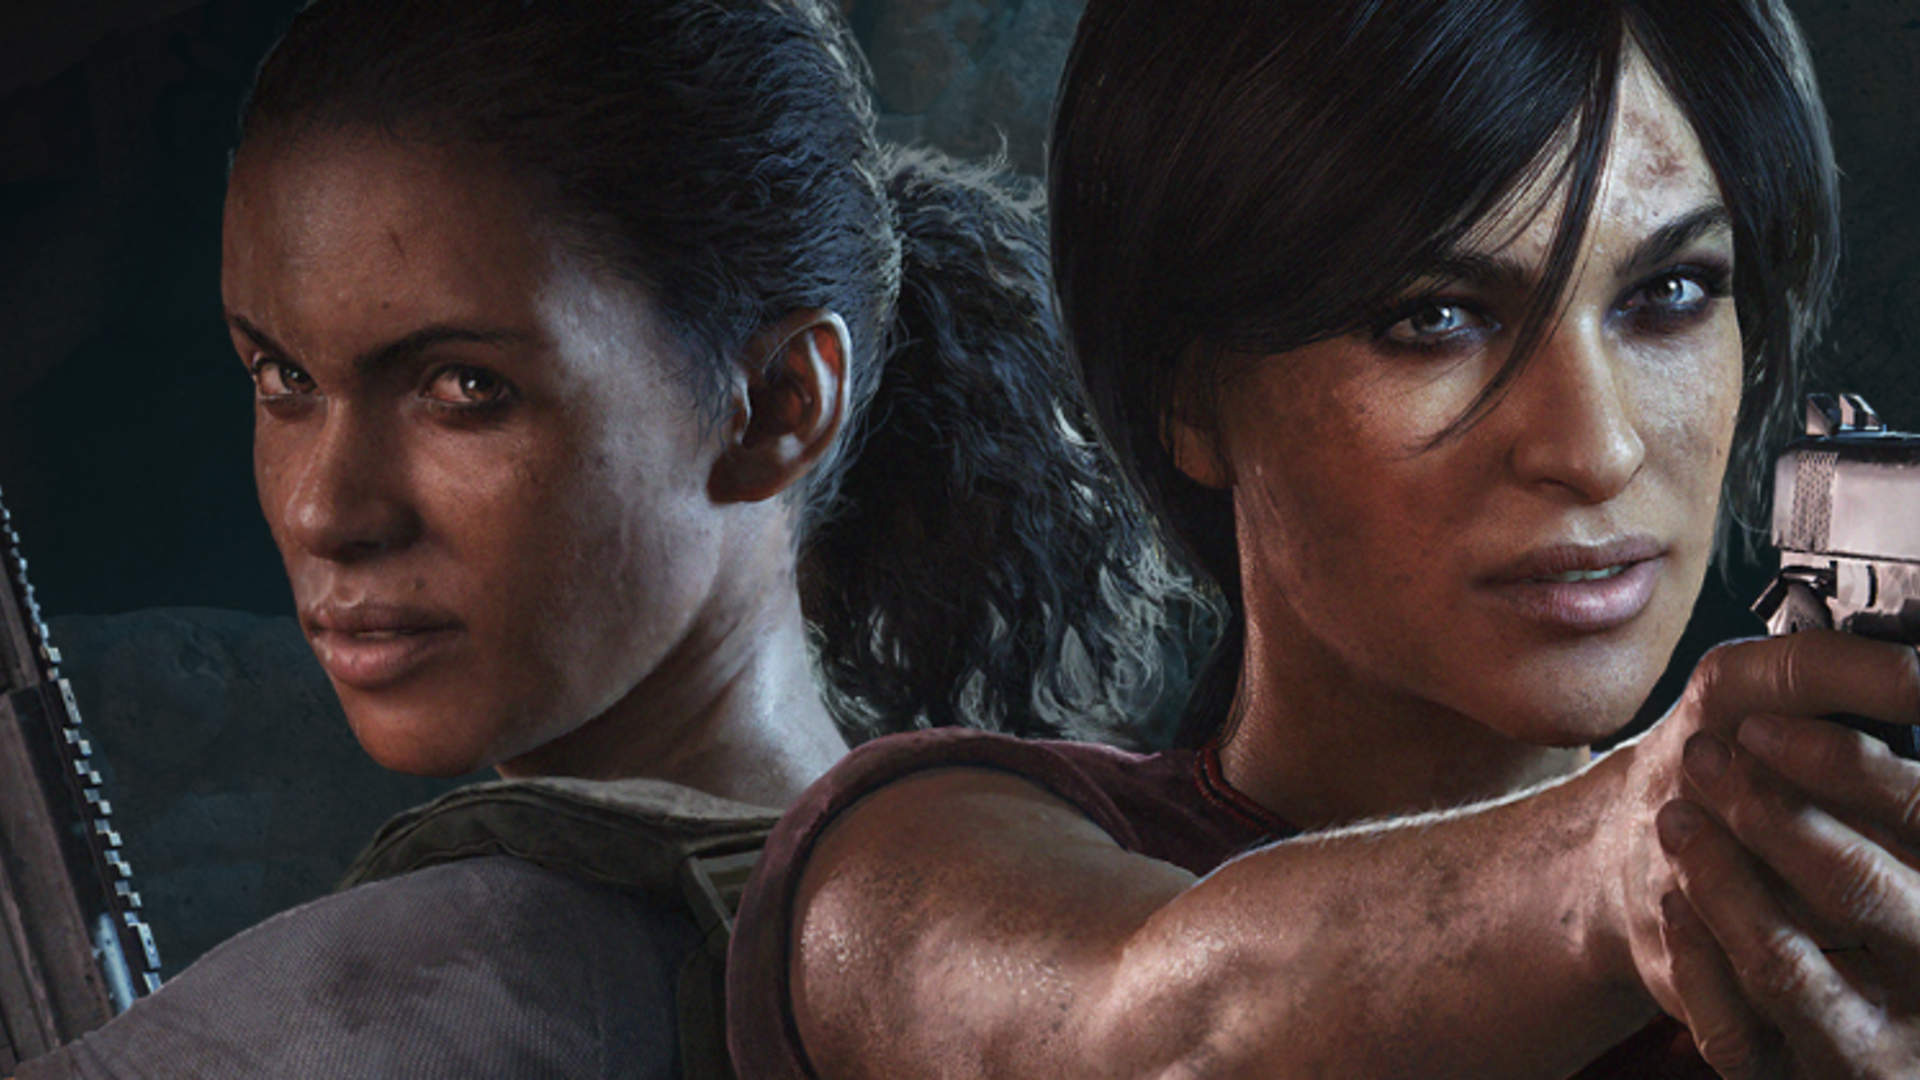 Chloe Frazer from Uncharted: The Lost Legacy